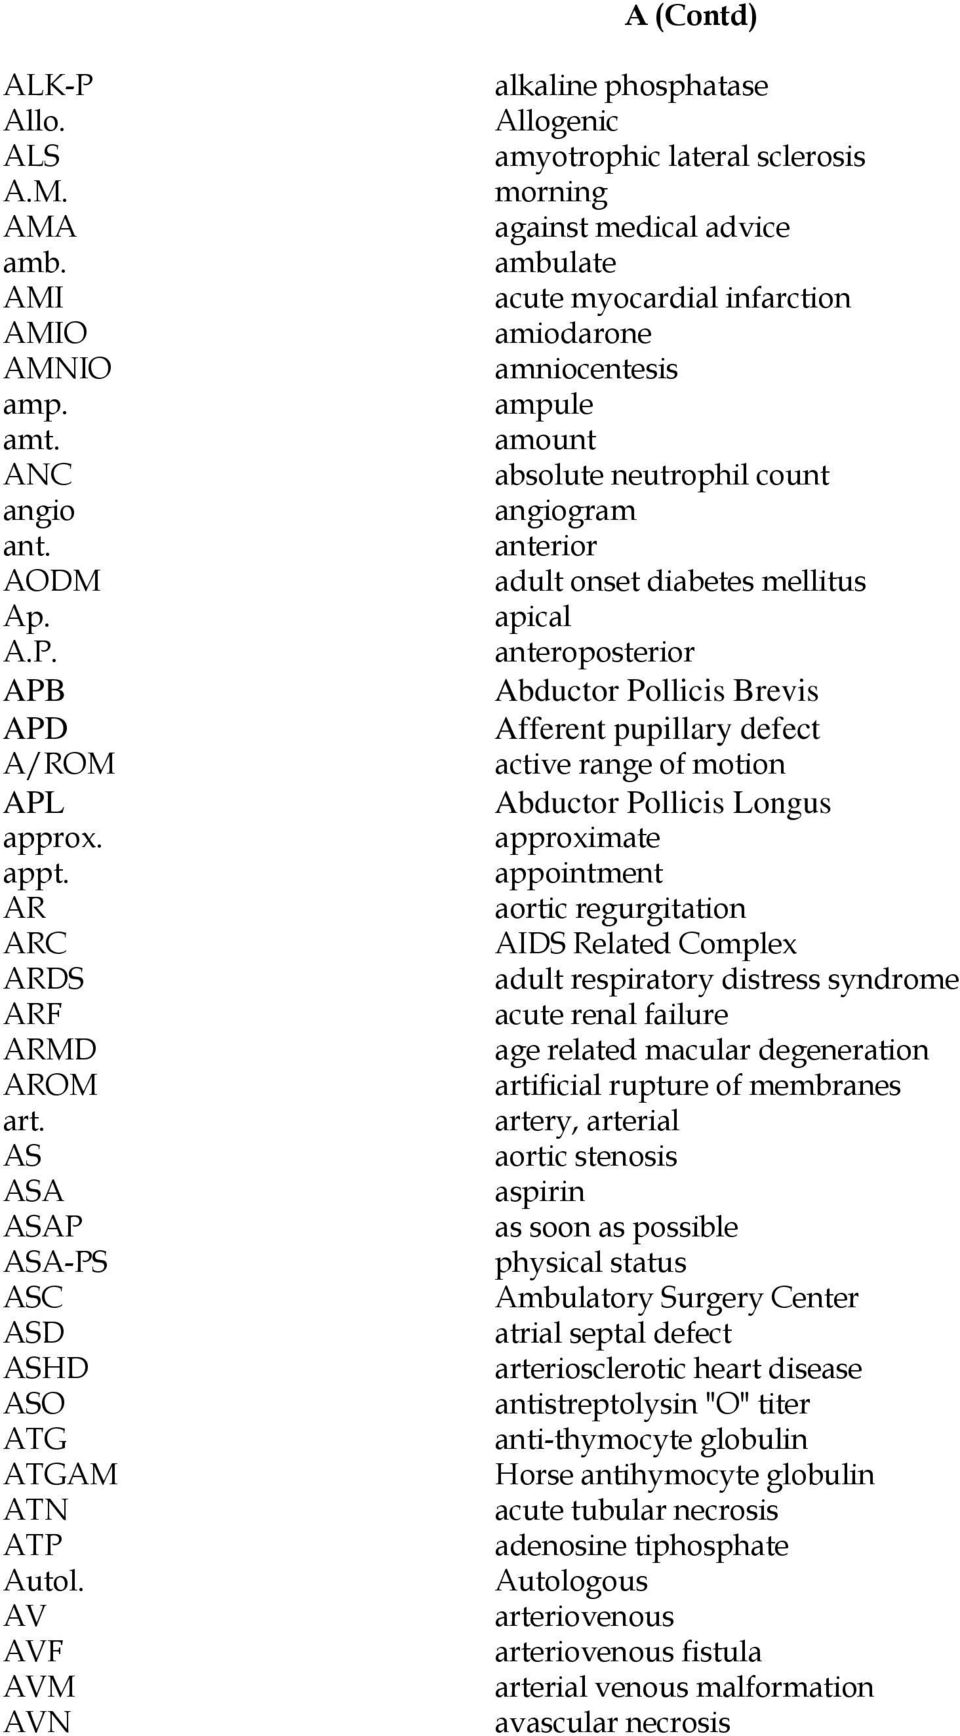 ABBREVIATIONS AND SYMBOLS FOR USE IN THE MEDICAL RECORD - PDF